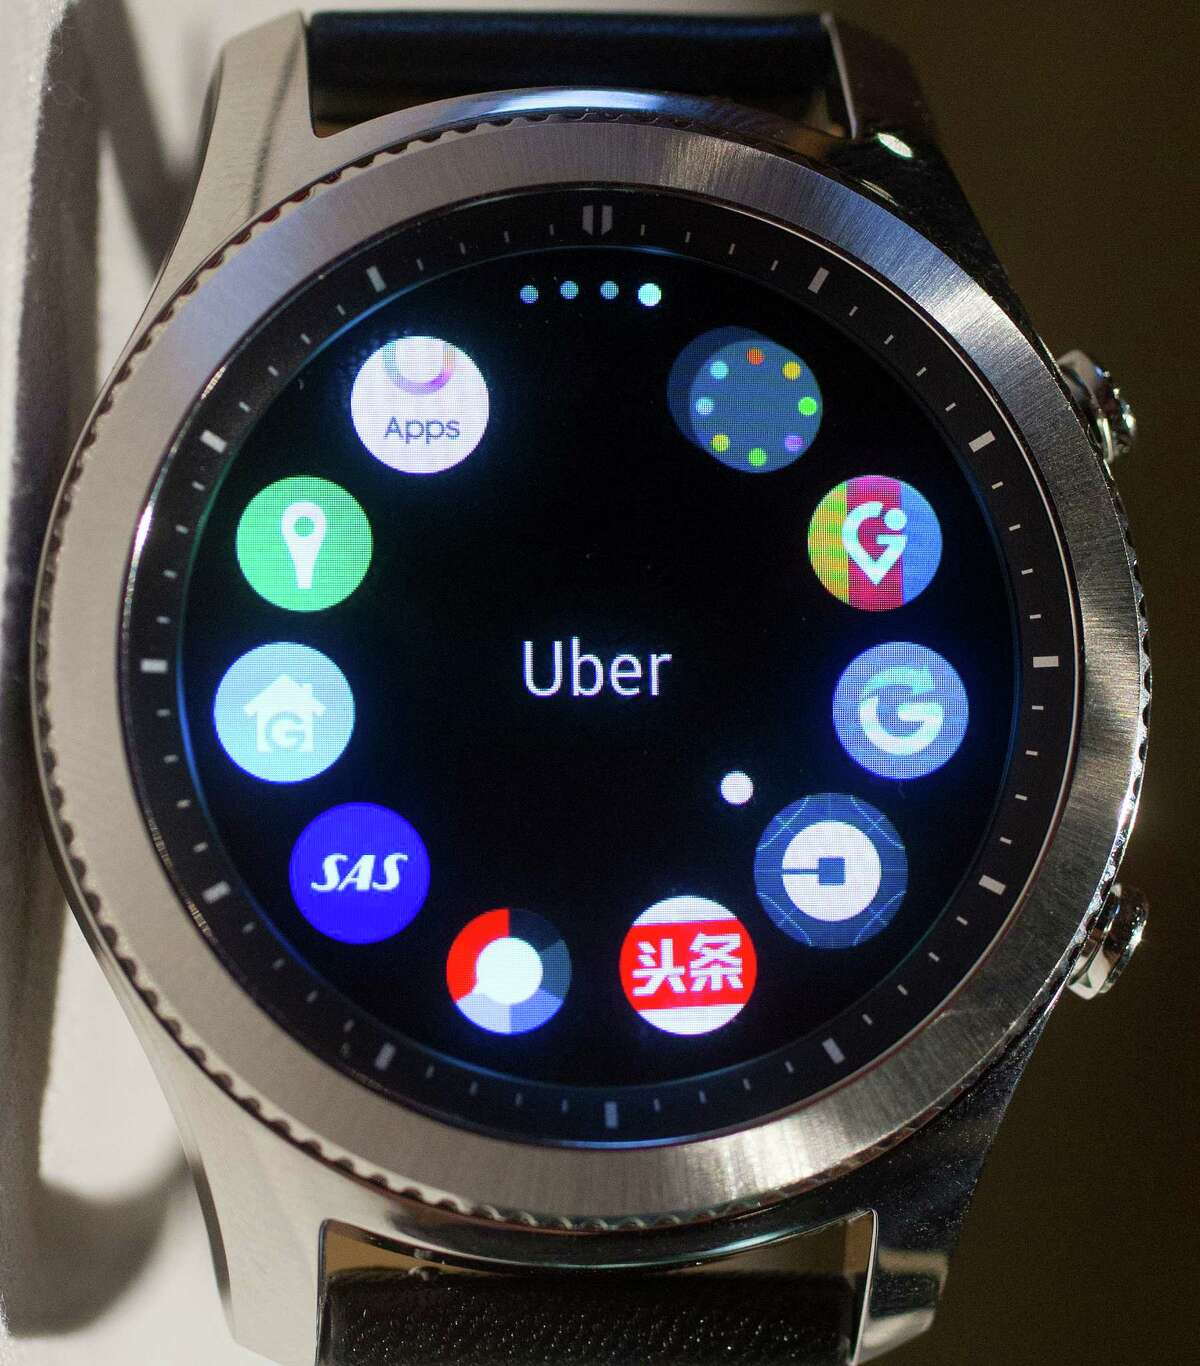 In this Aug. 25, 2016, photo, taken in New York, the Samsung S3 classic version is displayed with some of the many apps that are available for the smartwatch. Samsung?'s next smartwatch will come with GPS capabilities and the ability to call for help by triple-tapping a side button. (AP Photo/Mark Lennihan) ORG XMIT: NYML302